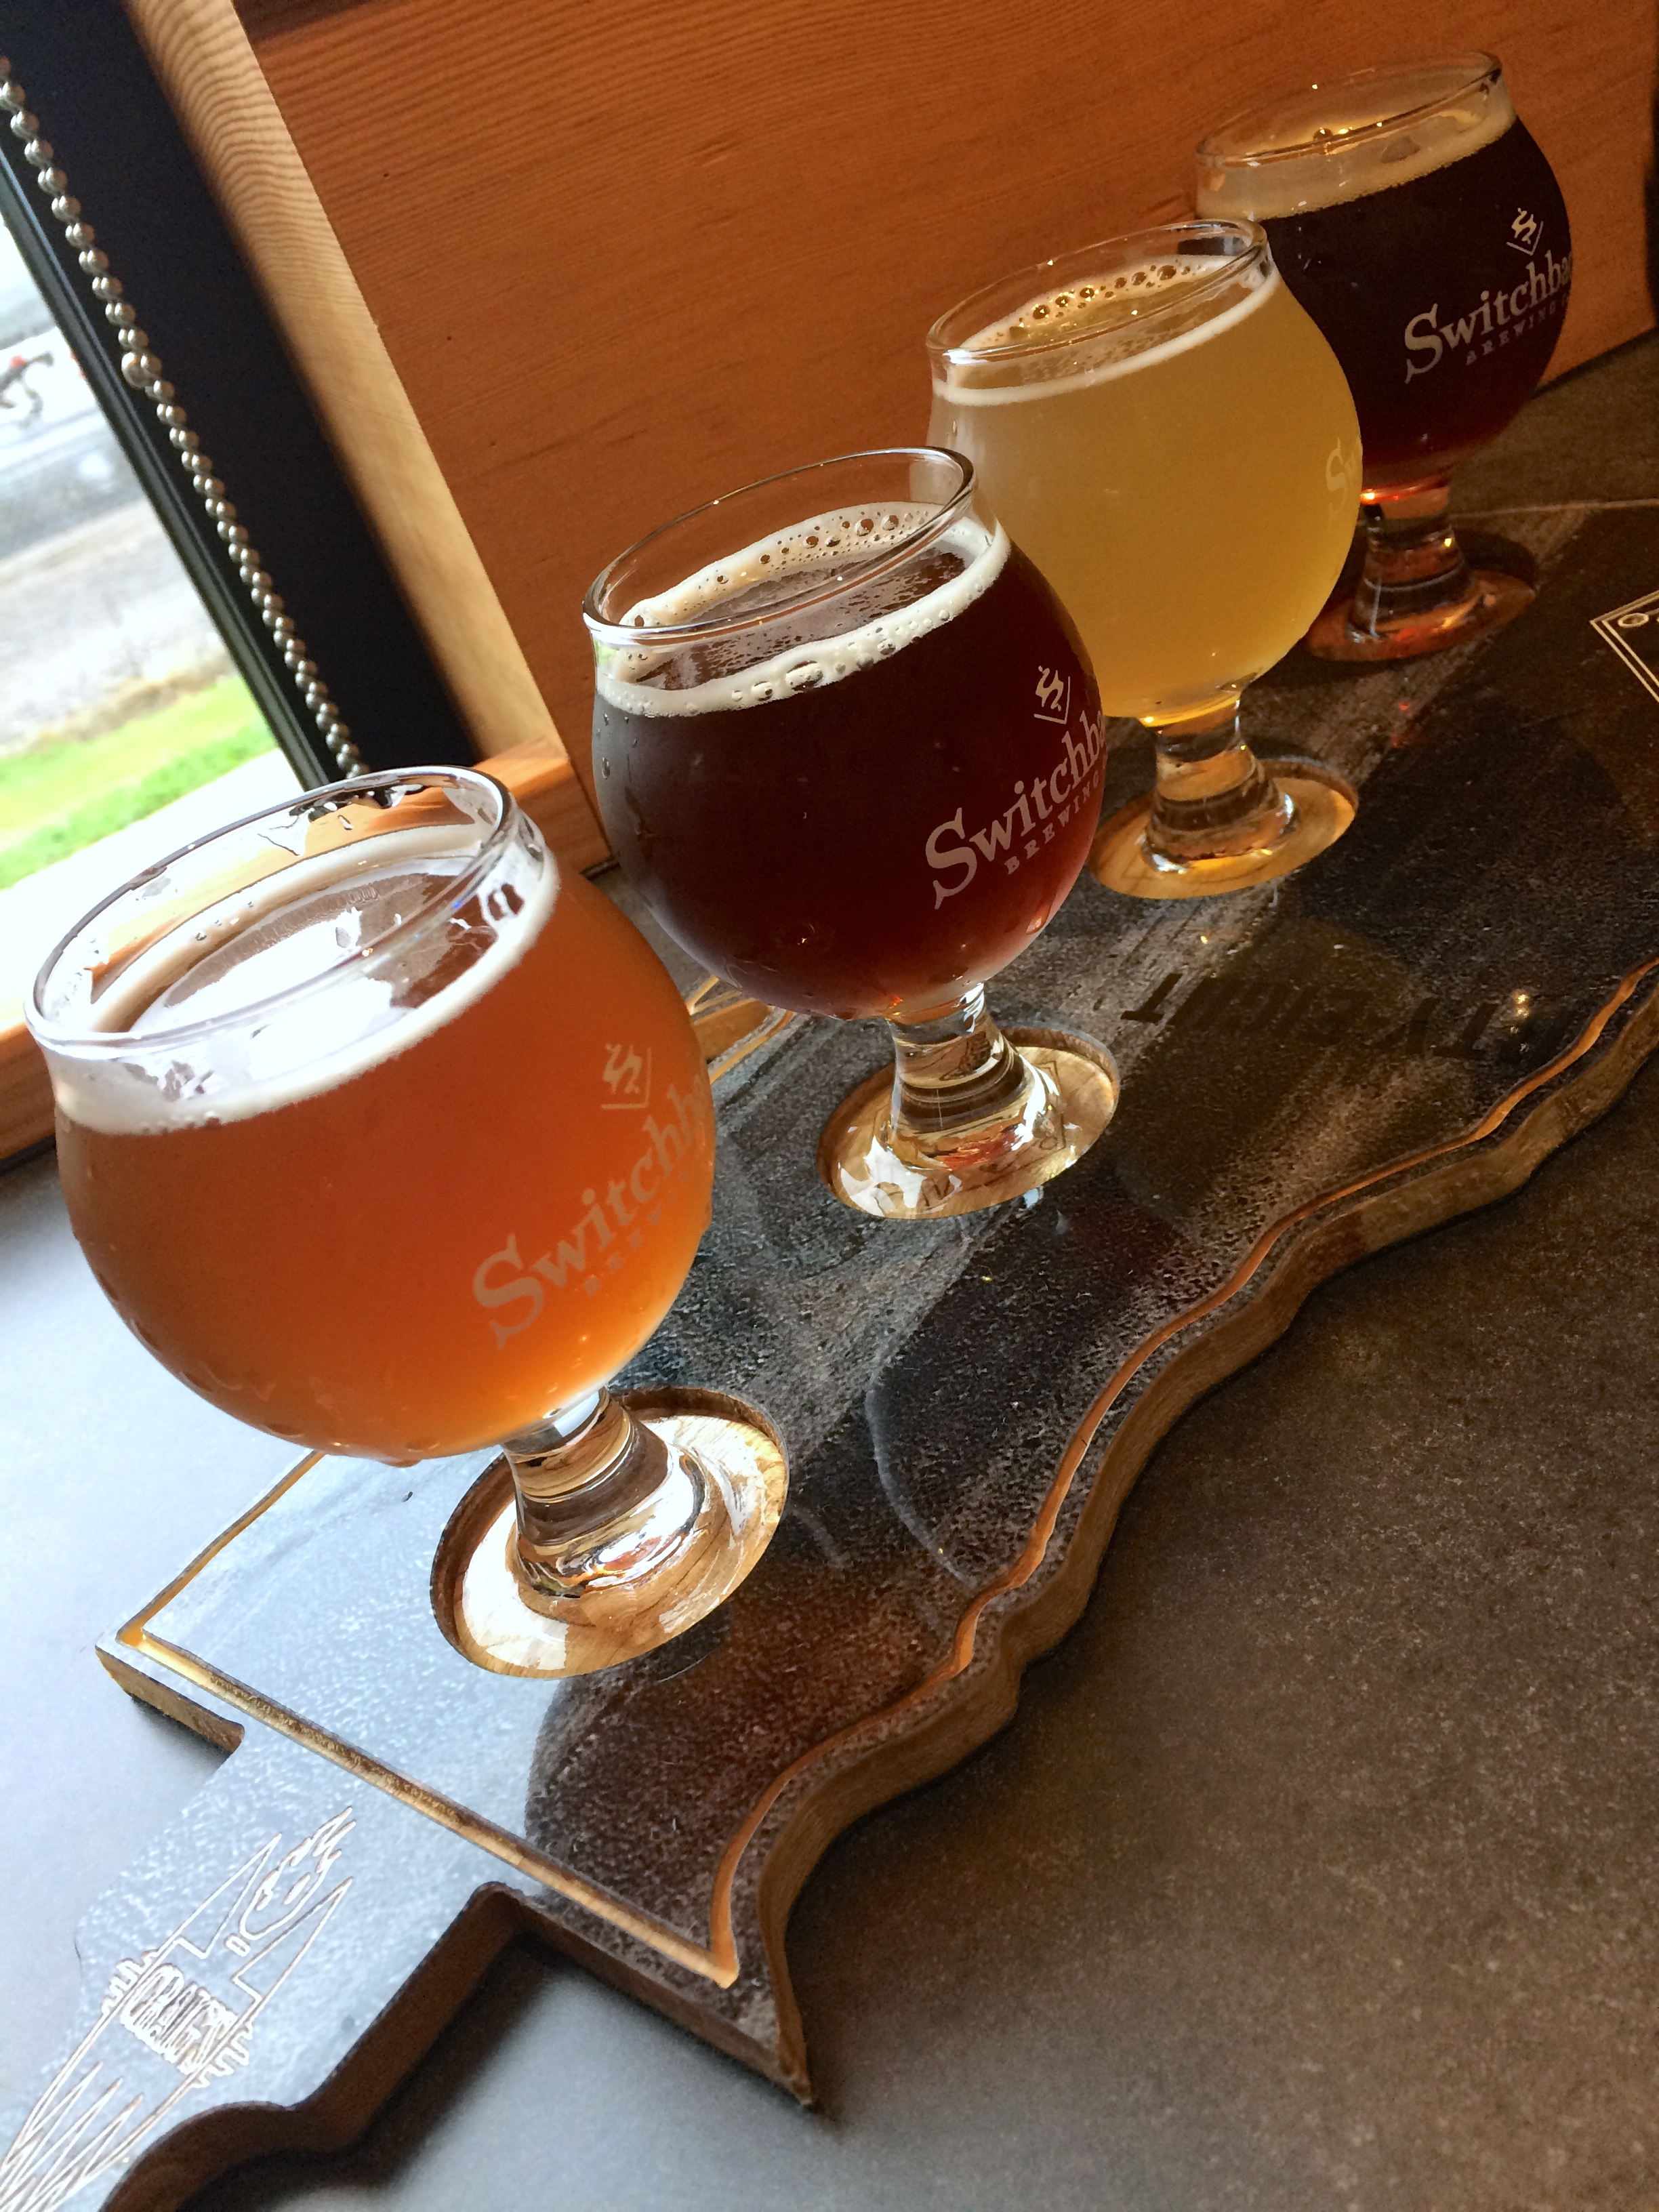 Visiting the new tasting room at Switchback Brewery. We were told to sample from the bottom of the state to the top: the classic Switchback Unfiltered Ale, a new Brown Ale, a new Citra Pils, and a Roasted Red Ale. The classic will always be my favorite.